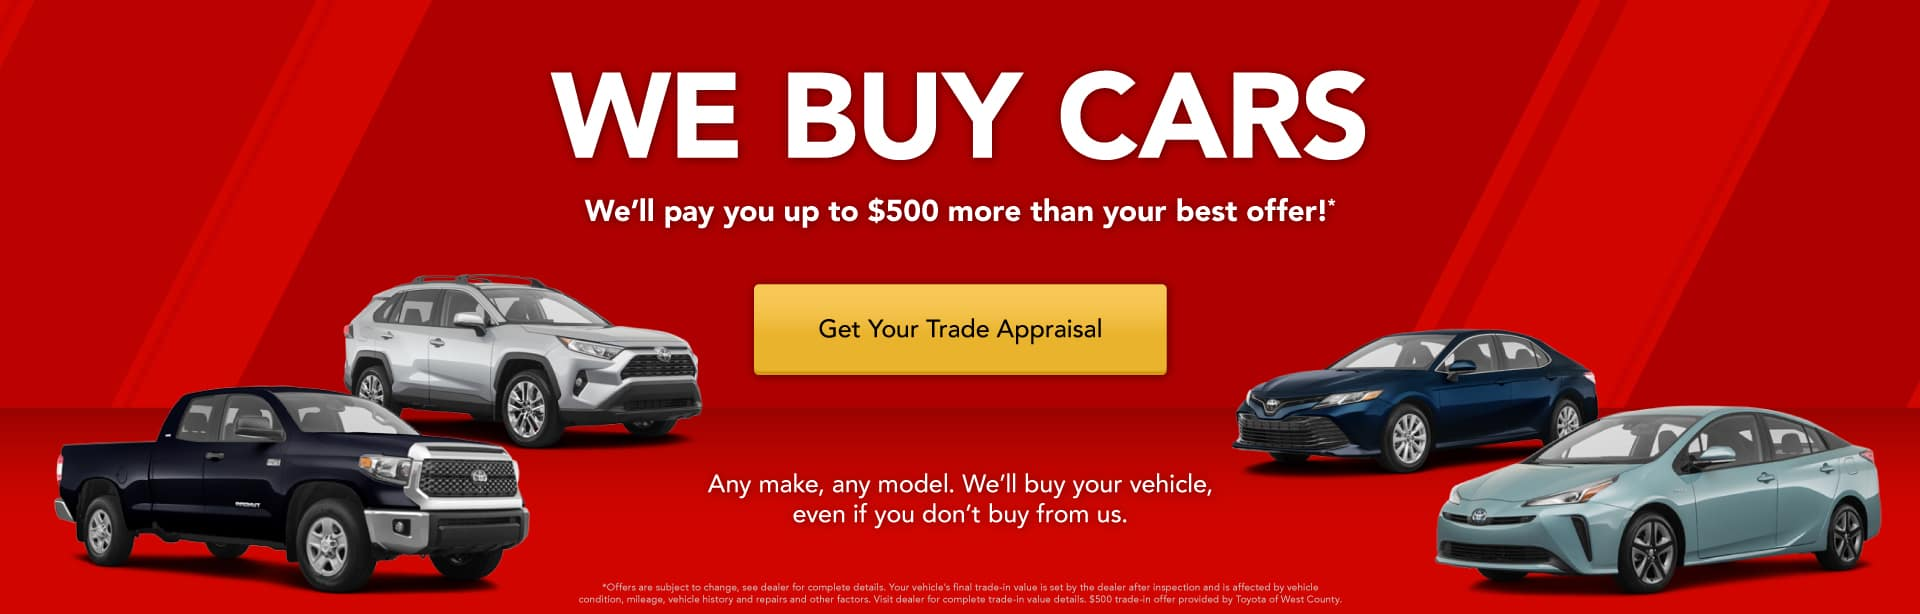 We Buy Cars, we'll pay you up to $500 more than your best offer!